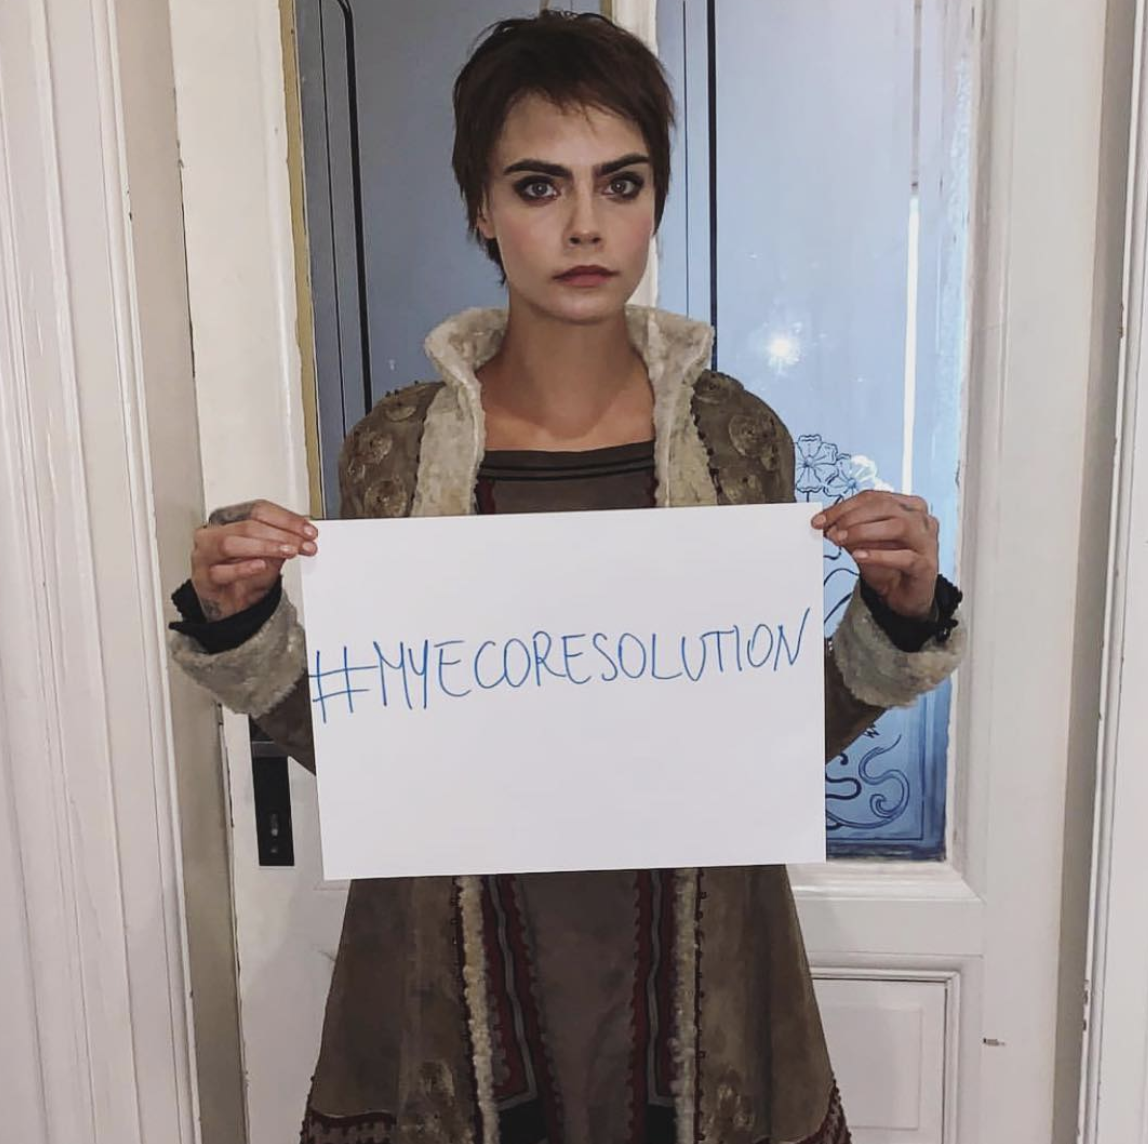 Cara Delevingne says: - #MyEcoResolution is to give up plastic bottles and straws. Even Though I may never be perfectI have made the resolution to create positive change to my daily life, to cut my consumption, to limit catastrophic climate change, and support my mental health. I nominate Kendall Jenner & Miley Cyrus to join the movement!